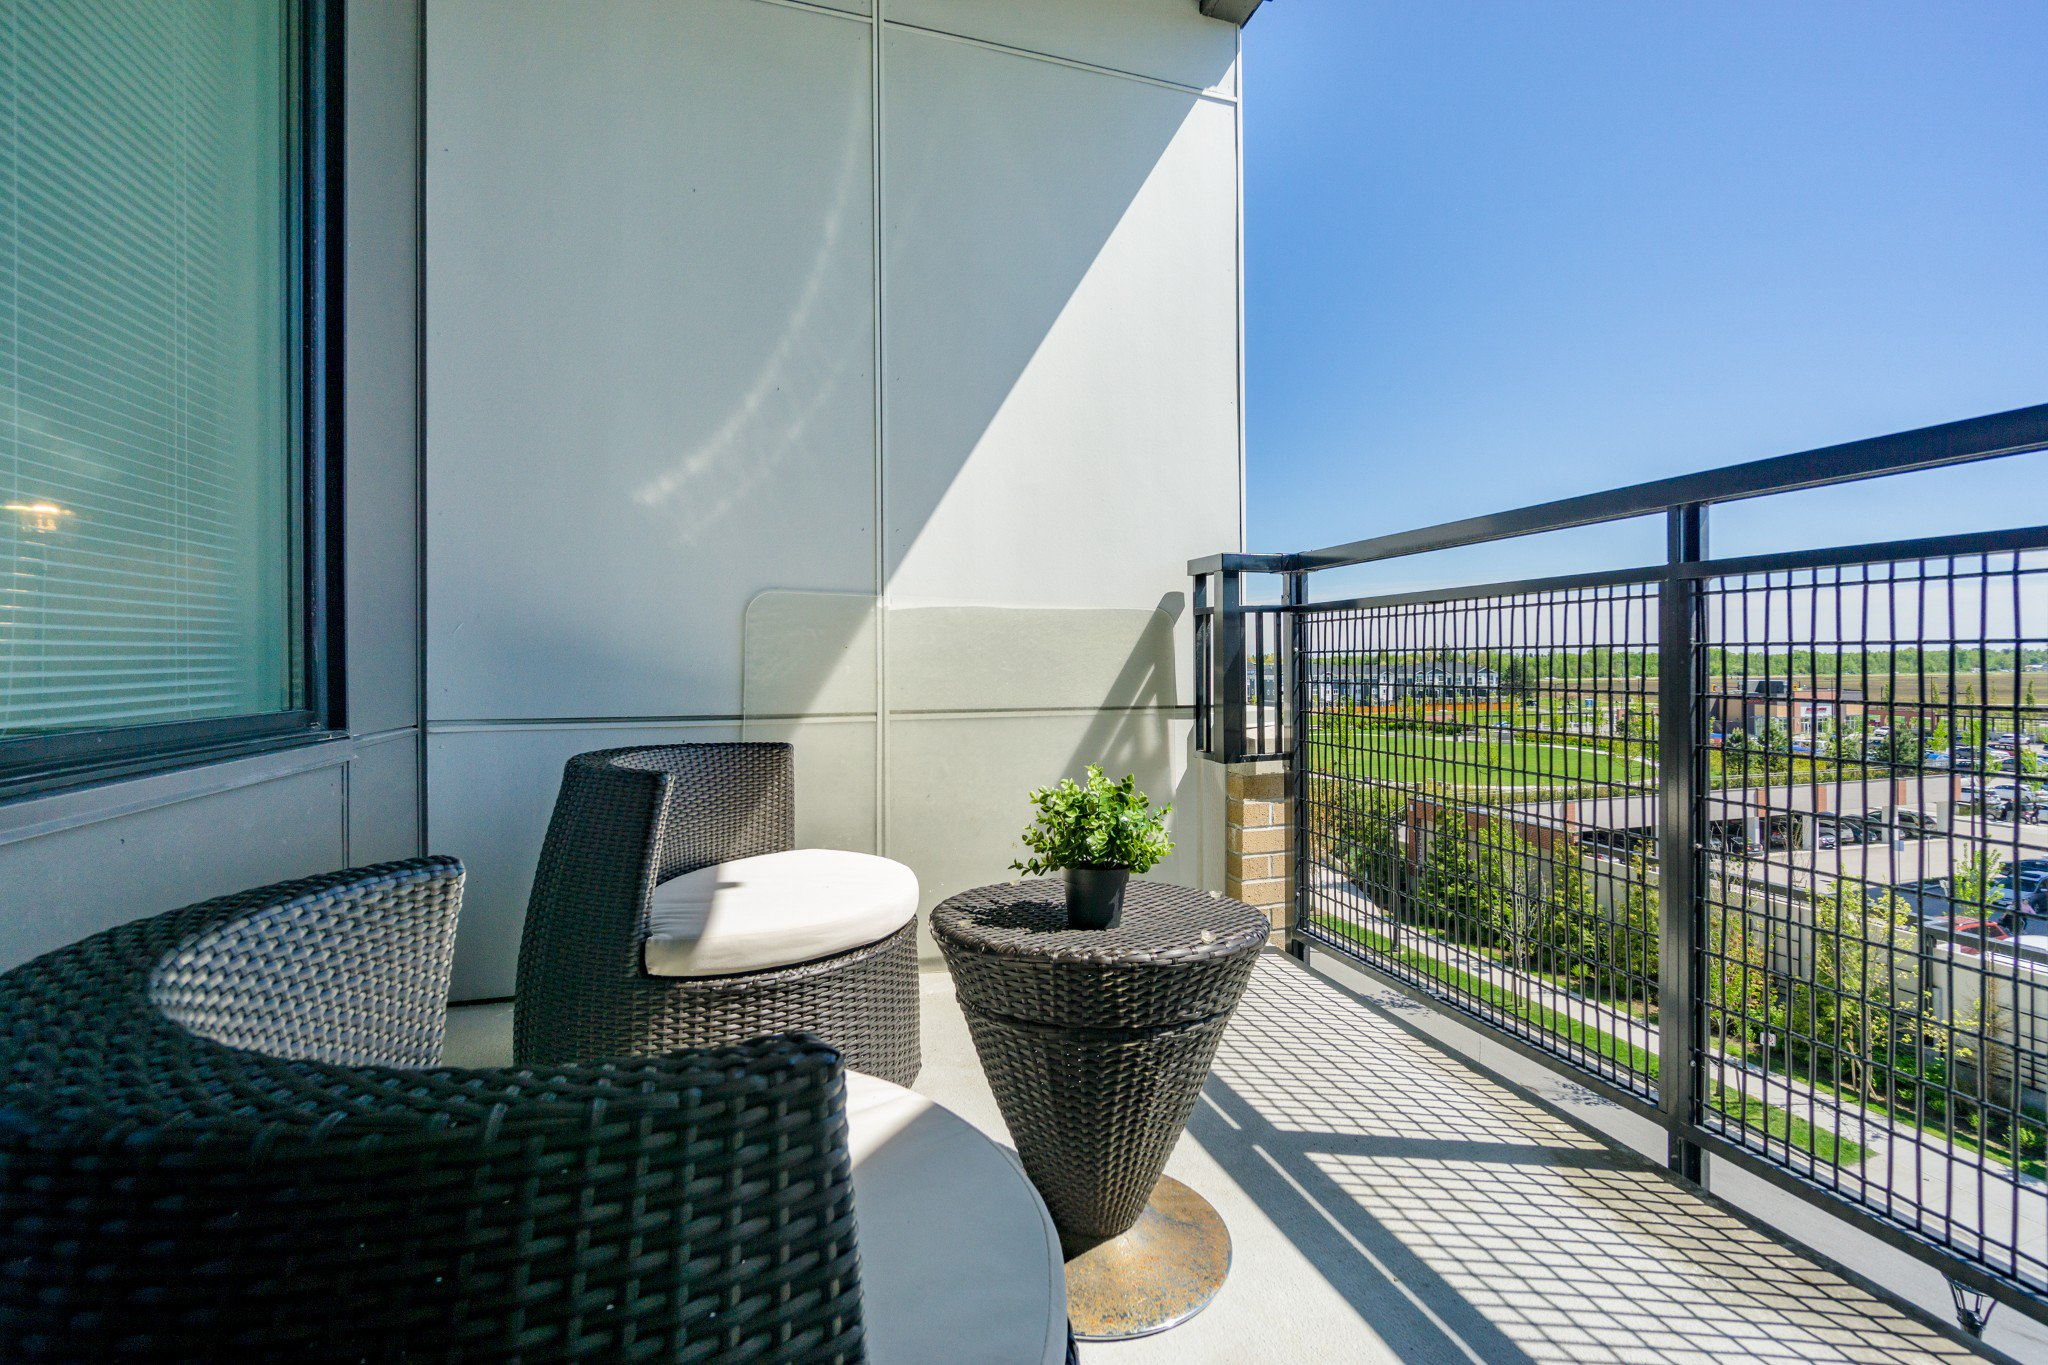 """Photo 18: Photos: 402 9311 ALEXANDRA Road in Richmond: West Cambie Condo for sale in """"ALEXANDRA COURT"""" : MLS®# R2266613"""